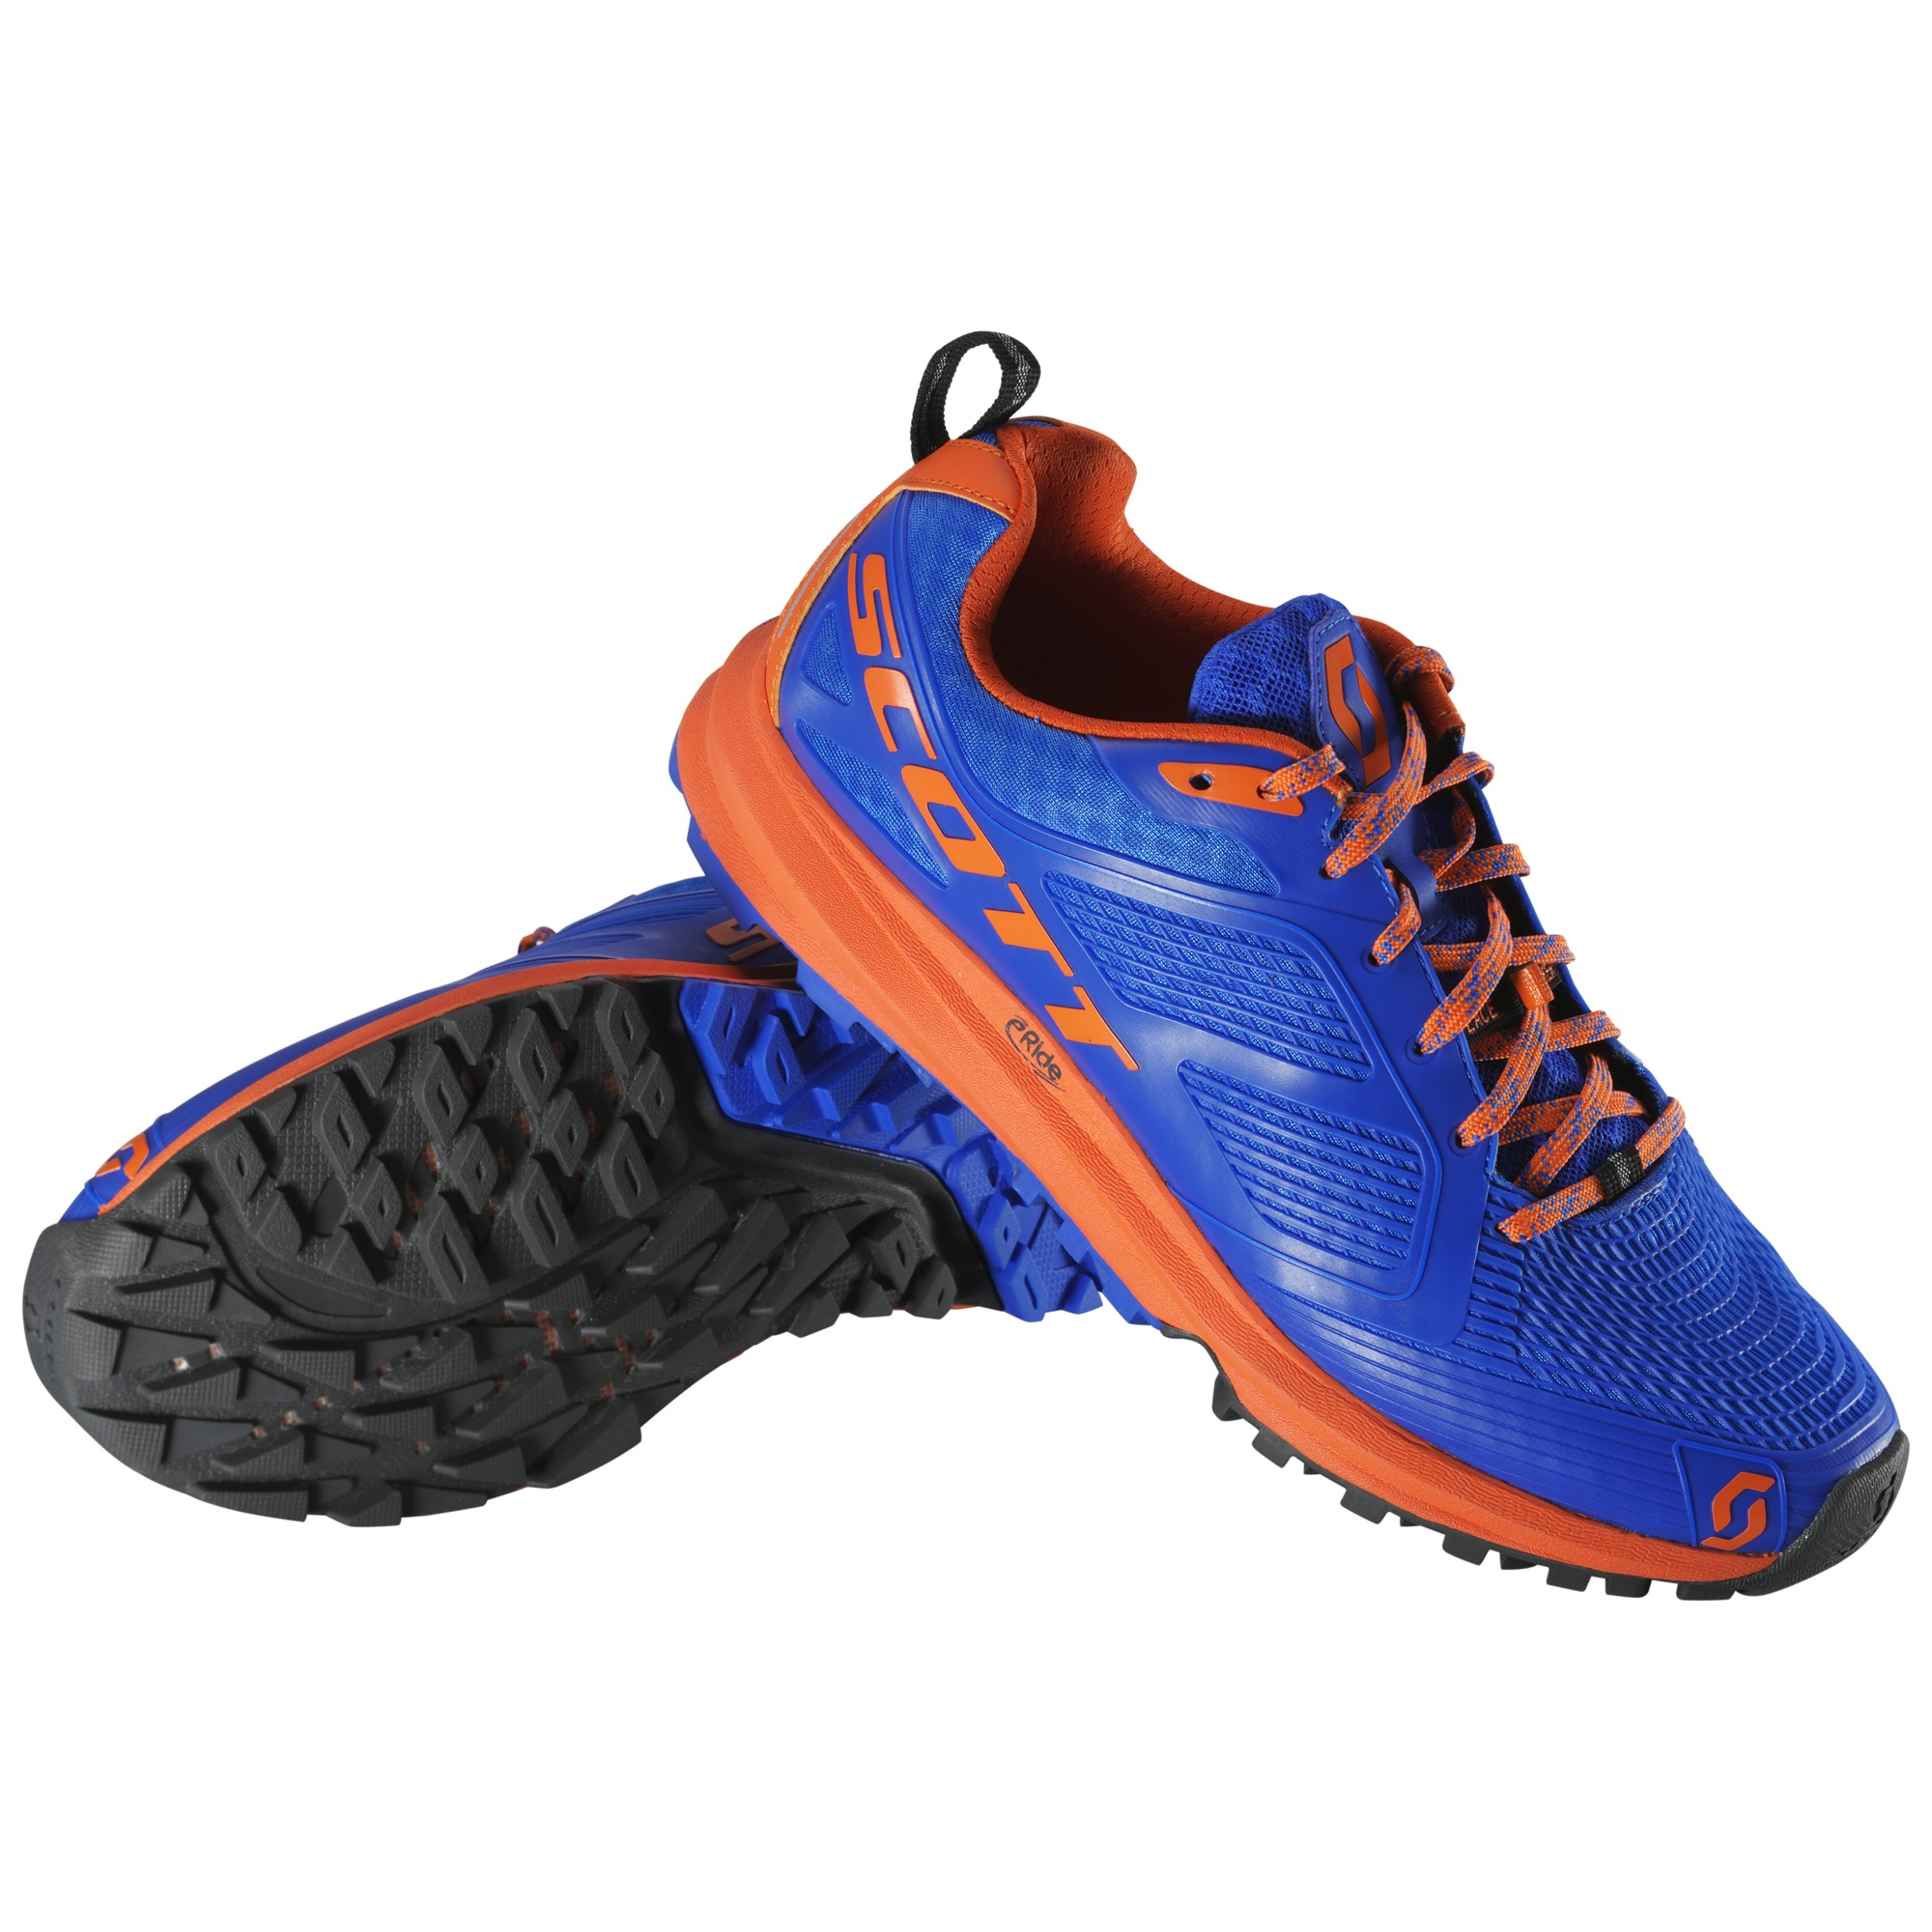 SCARPA TRAIL RUNNING SCOTT KINABALU ENDURO MEN 242022 blue orange.jpg